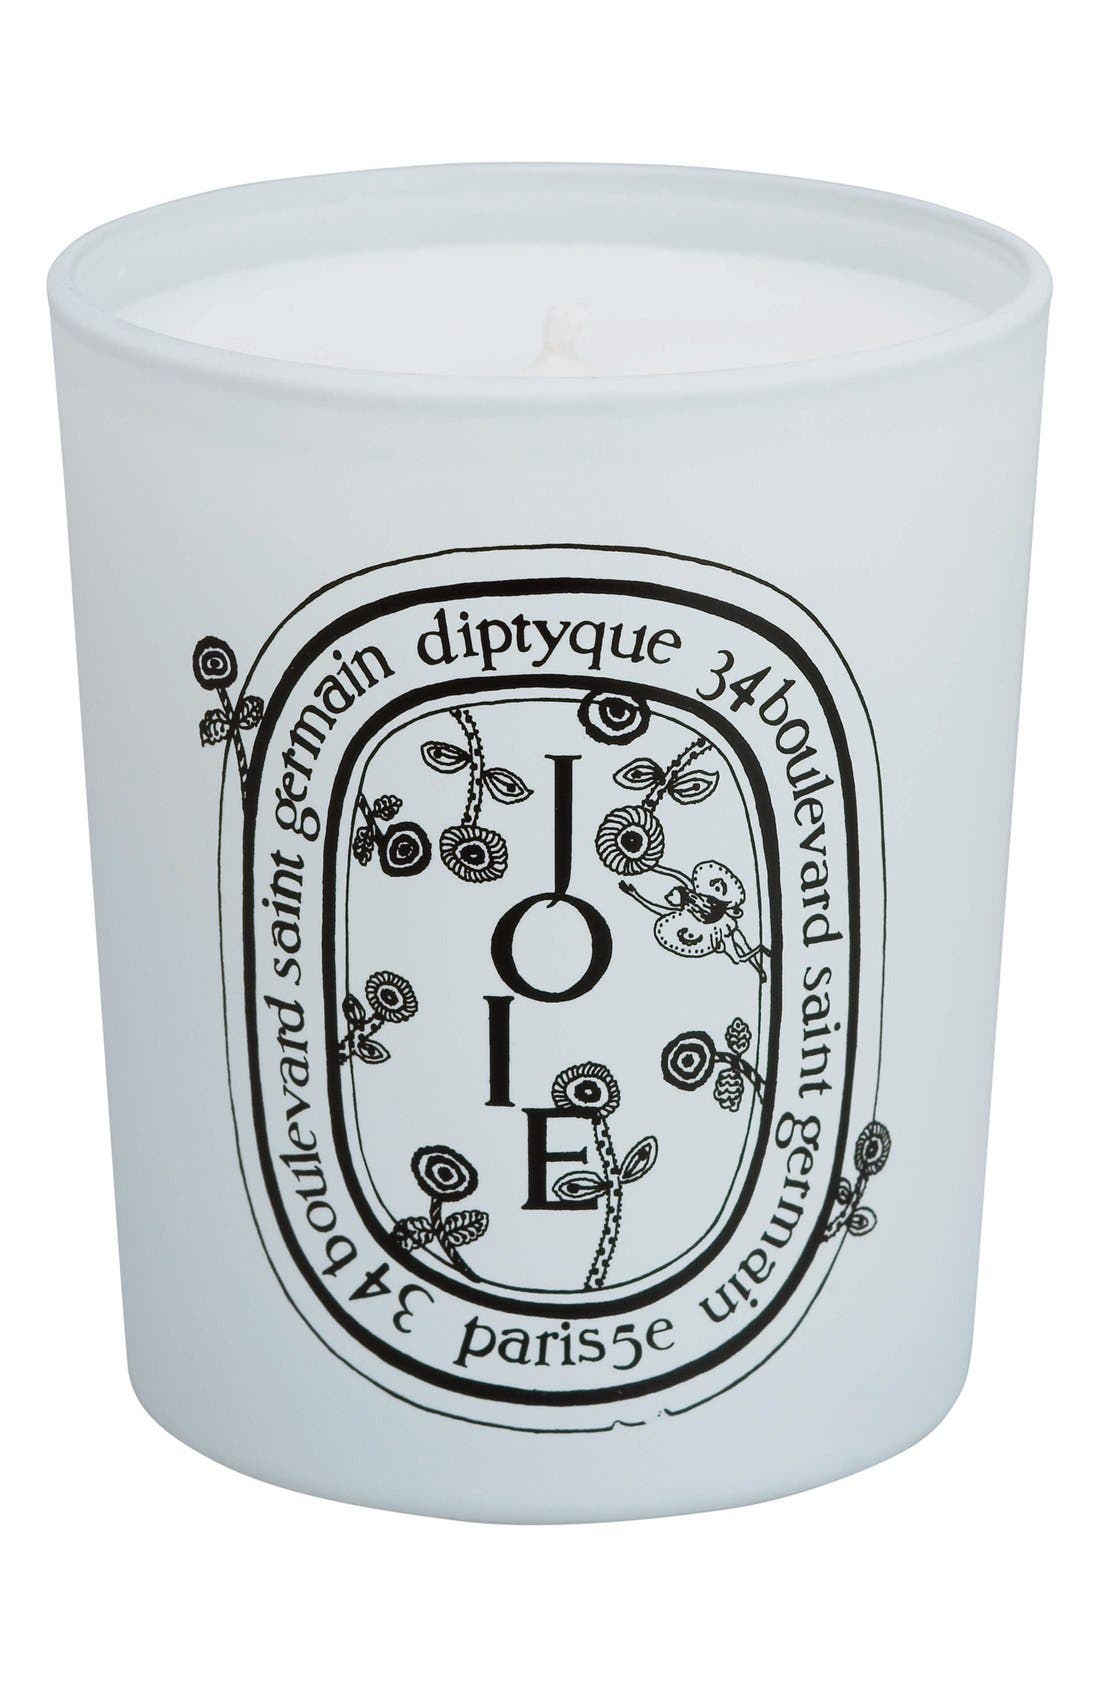 Alternate Image 1 Selected - diptyque 'Minä - Joie' Candle